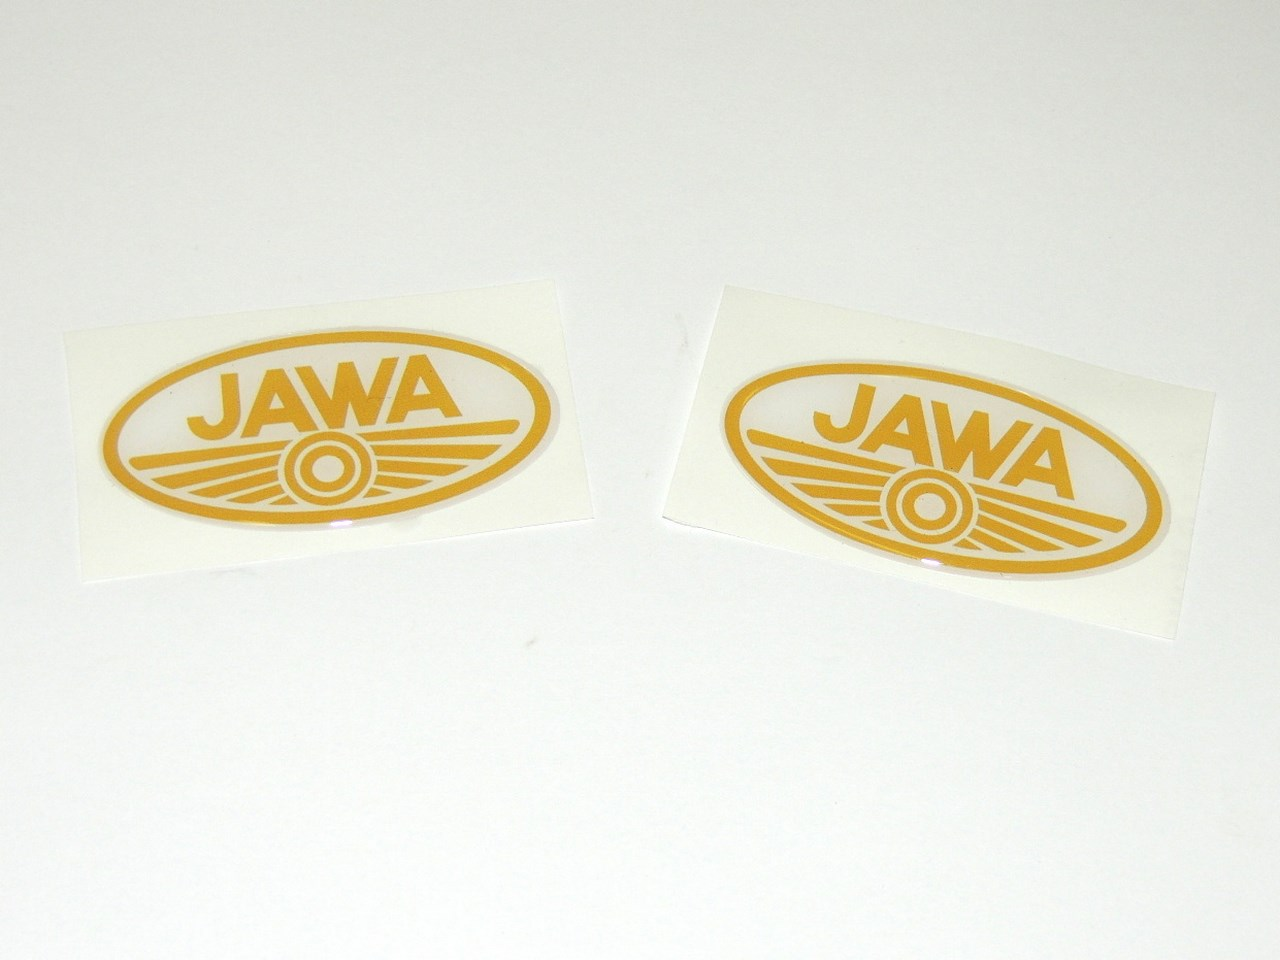 Sticker Jawa oval 3D-GOLD 7cm-2pcs